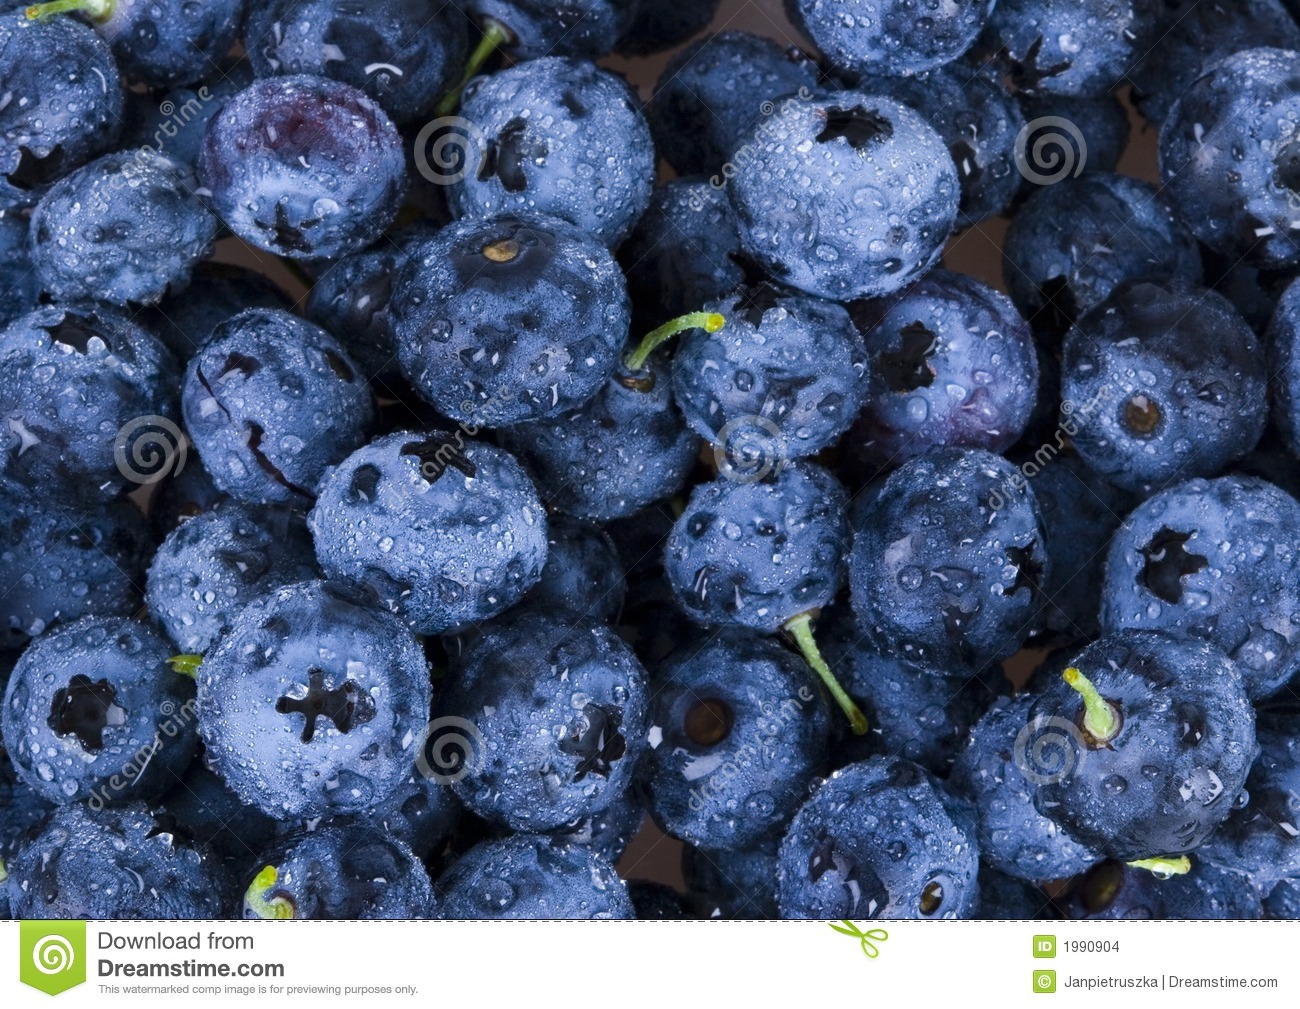 blaubeeren stockfoto bild von w rfel blaubeeren frucht. Black Bedroom Furniture Sets. Home Design Ideas